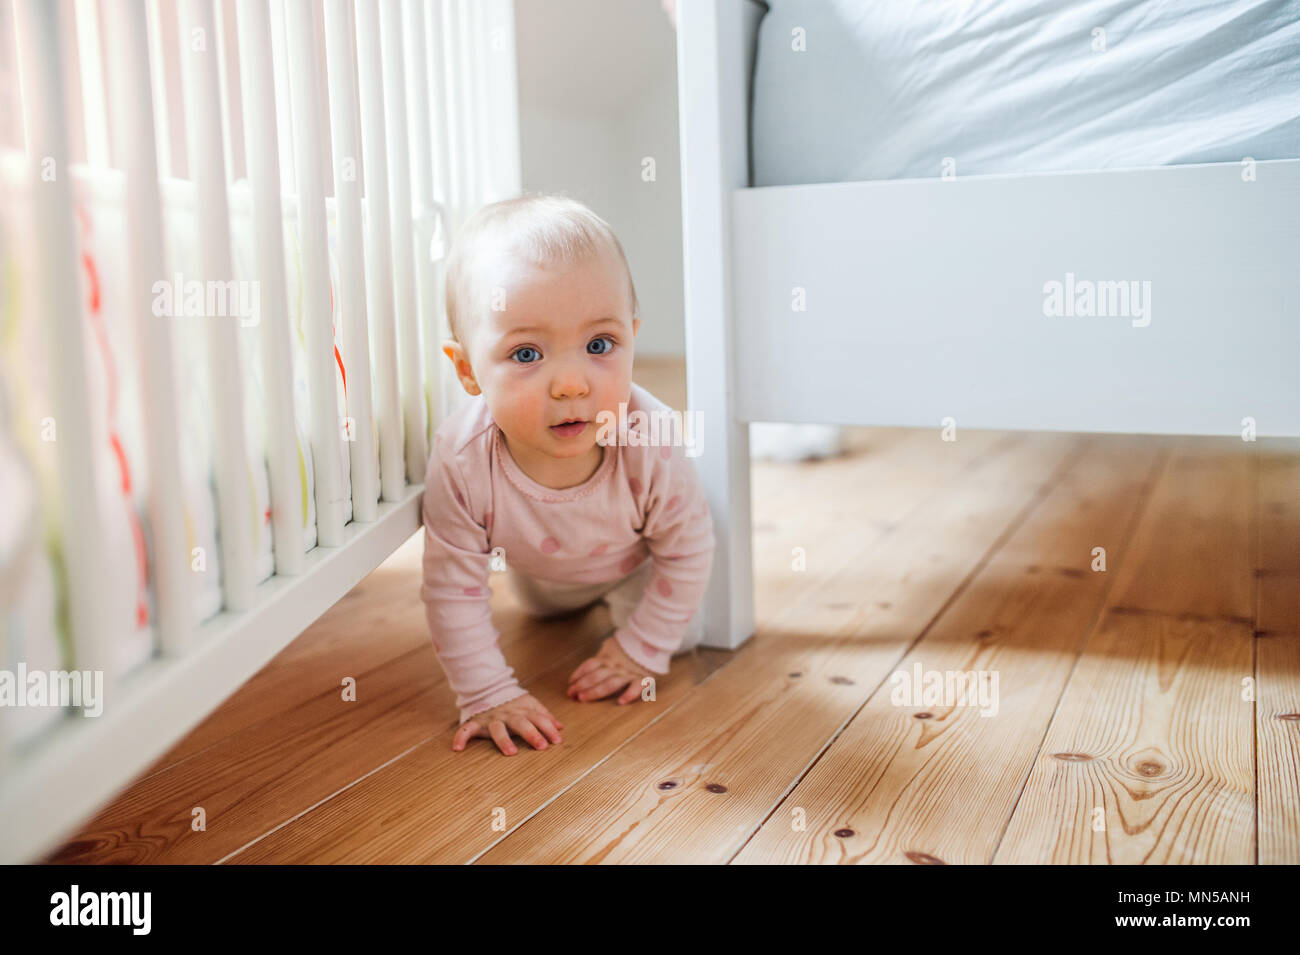 A toddler child crawling on the wooden floor in bedroom at home. - Stock Image